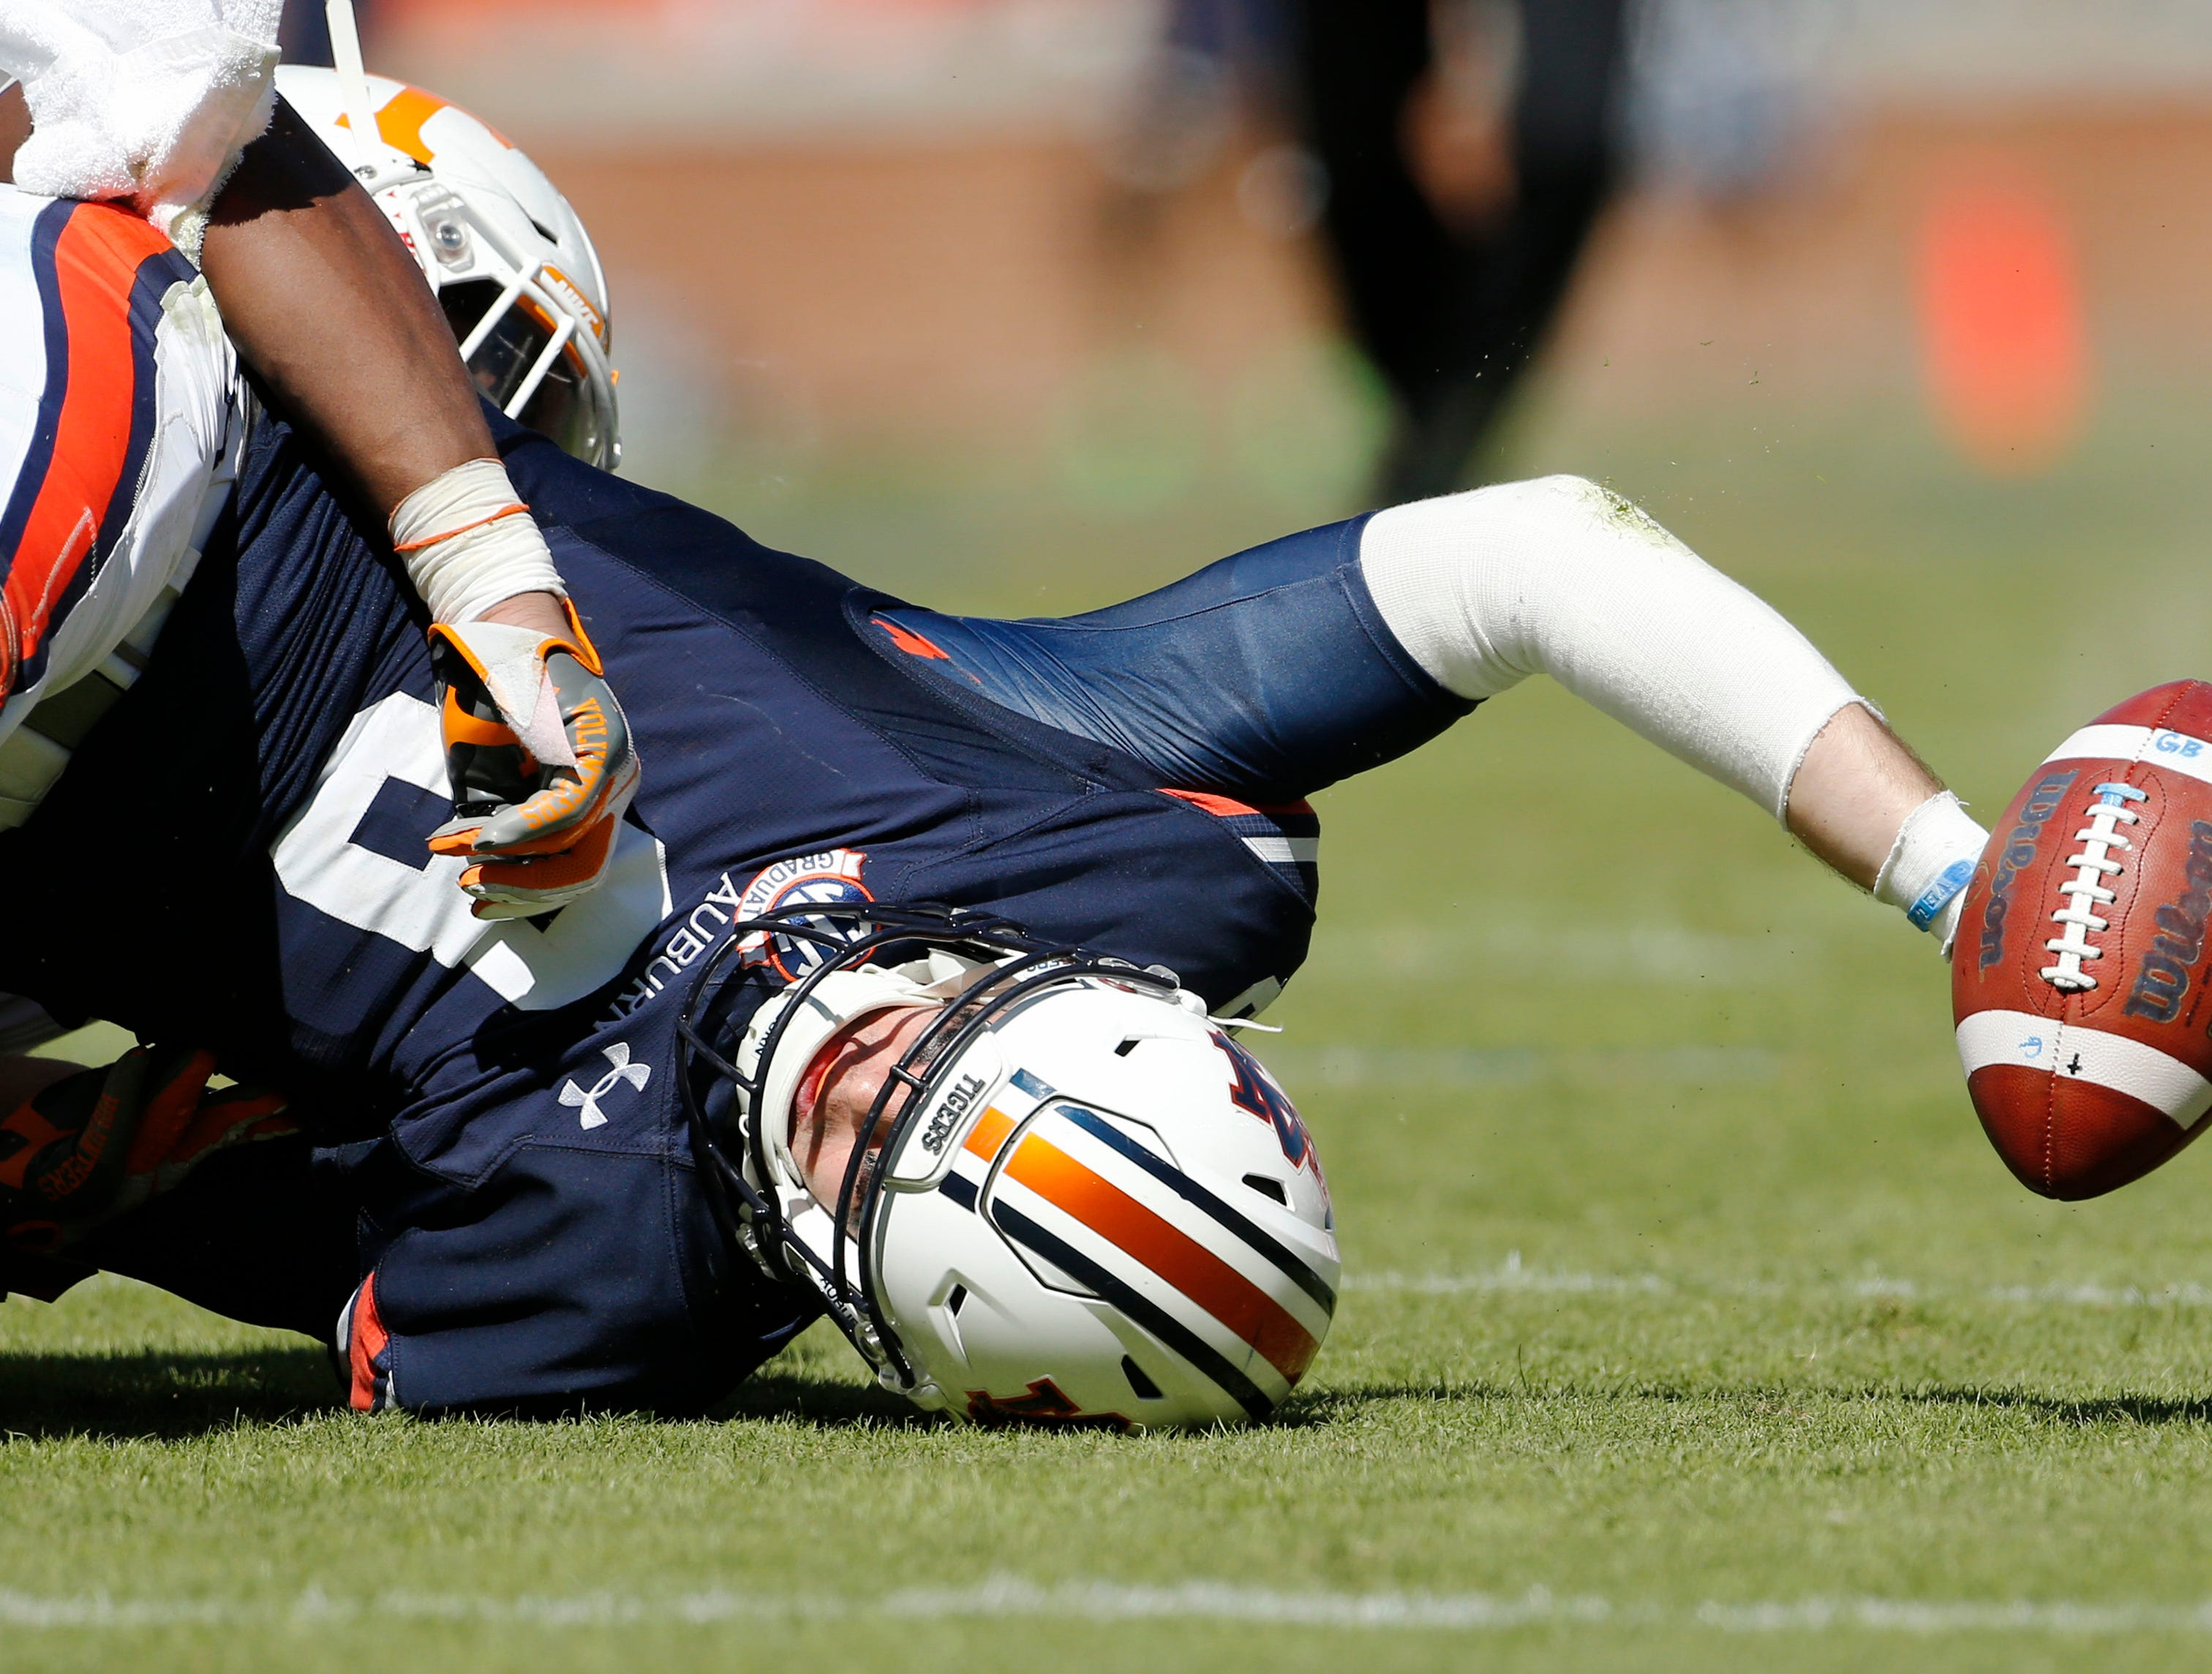 Auburn Tigers quarterback Jarrett Stidham (8) fumbles fduring the third quarter against the Tennessee Volunteers at Jordan-Hare Stadium.